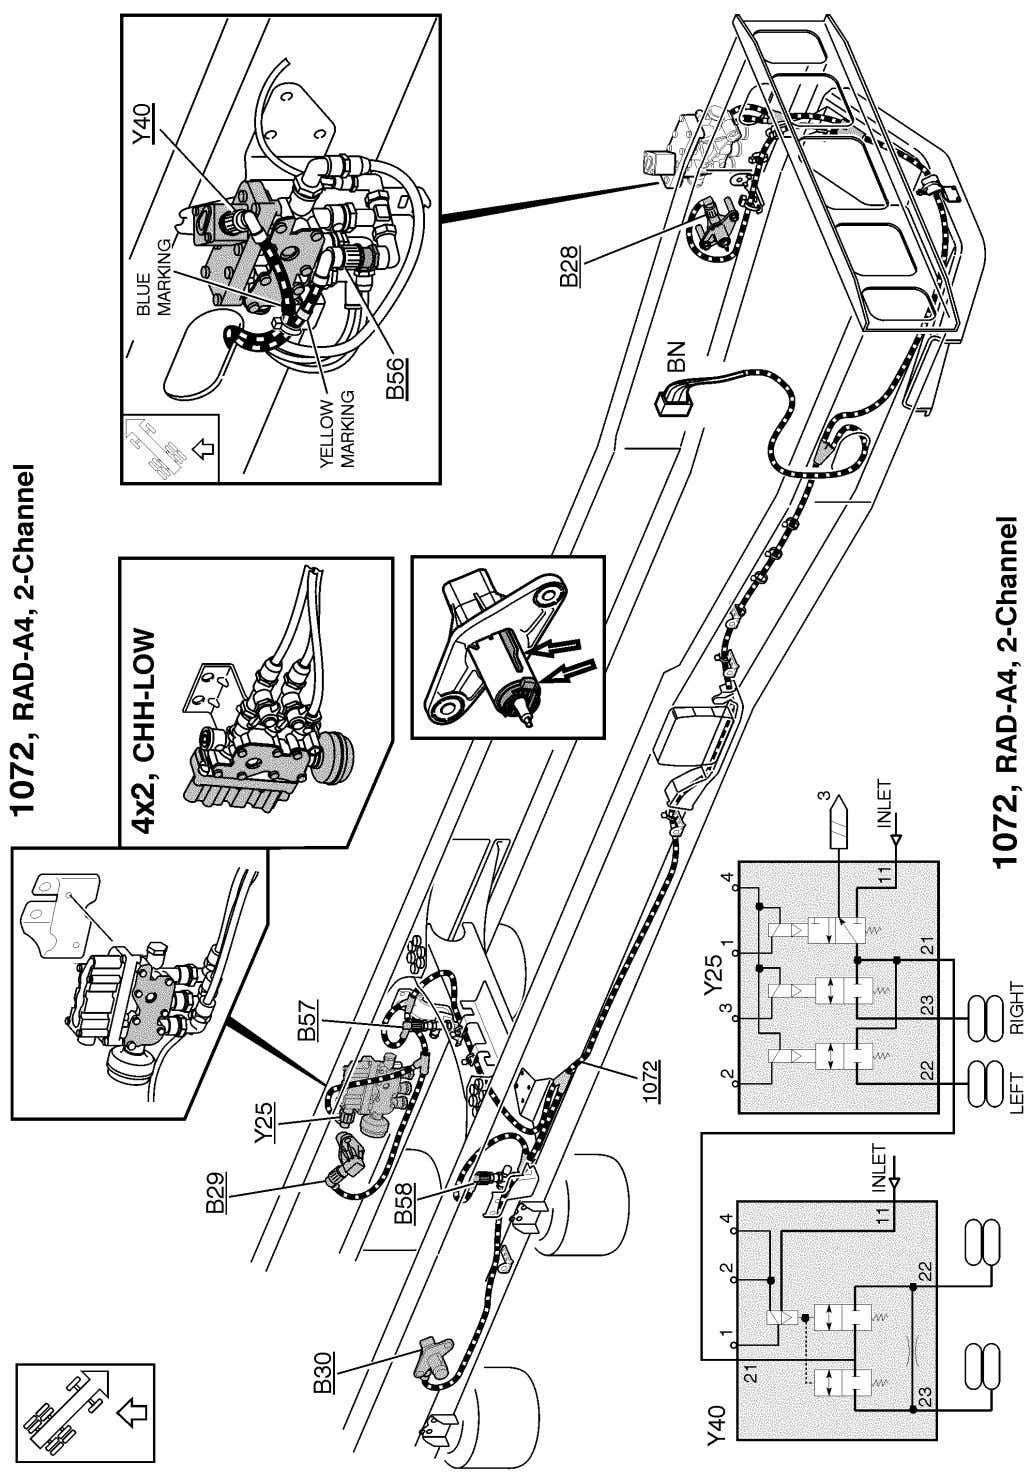 T3020571 Page 178 (298) Wiring diagram